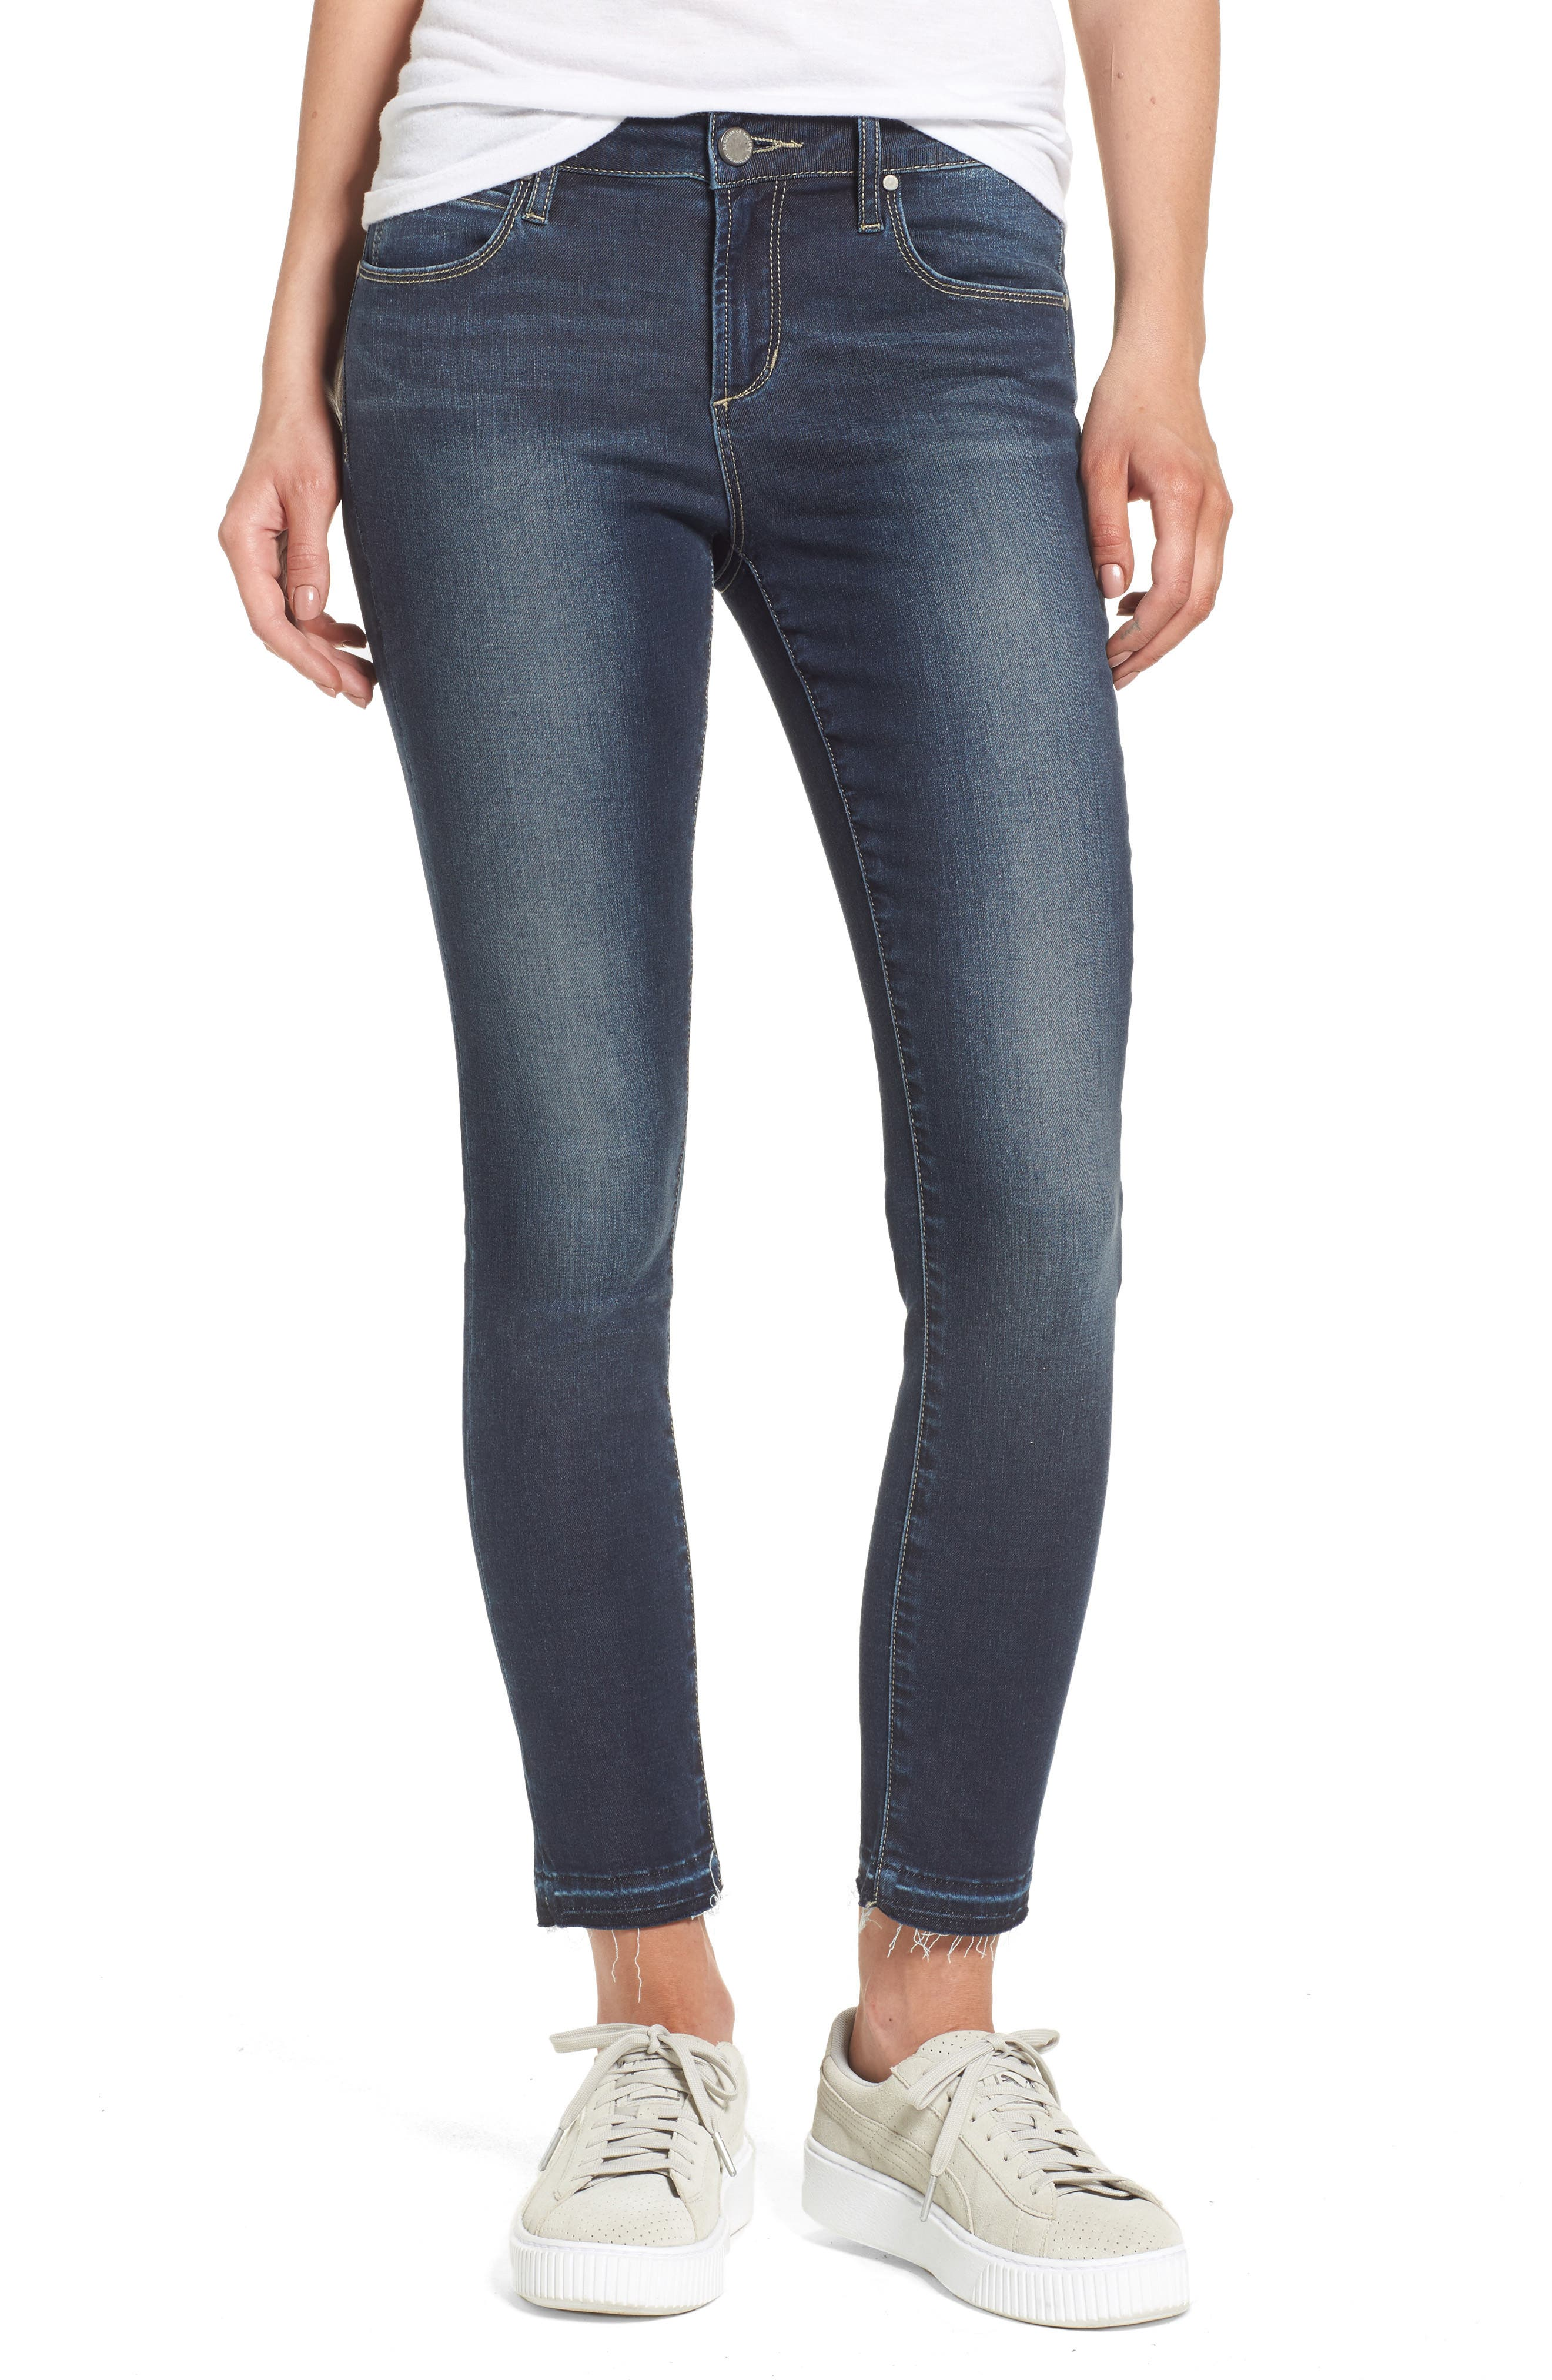 Articles of Society Carly Release Hem Crop Skinny Jeans (Blue Fly)